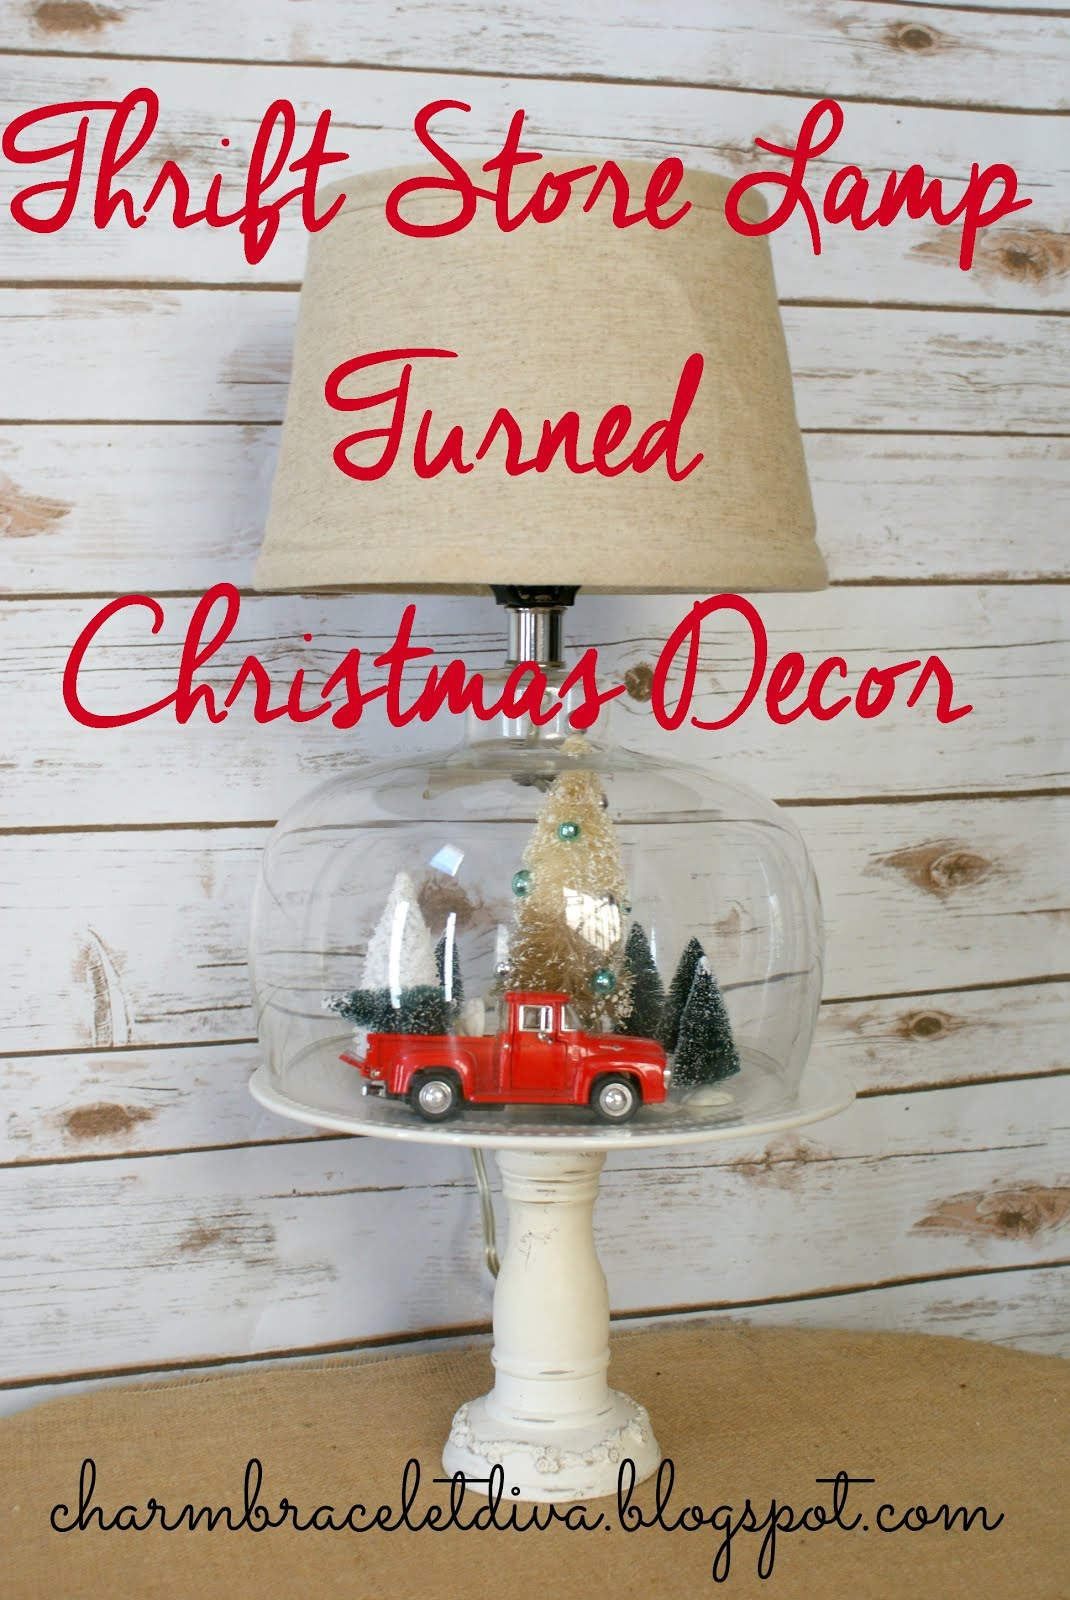 Thrifty Christmas Decor!